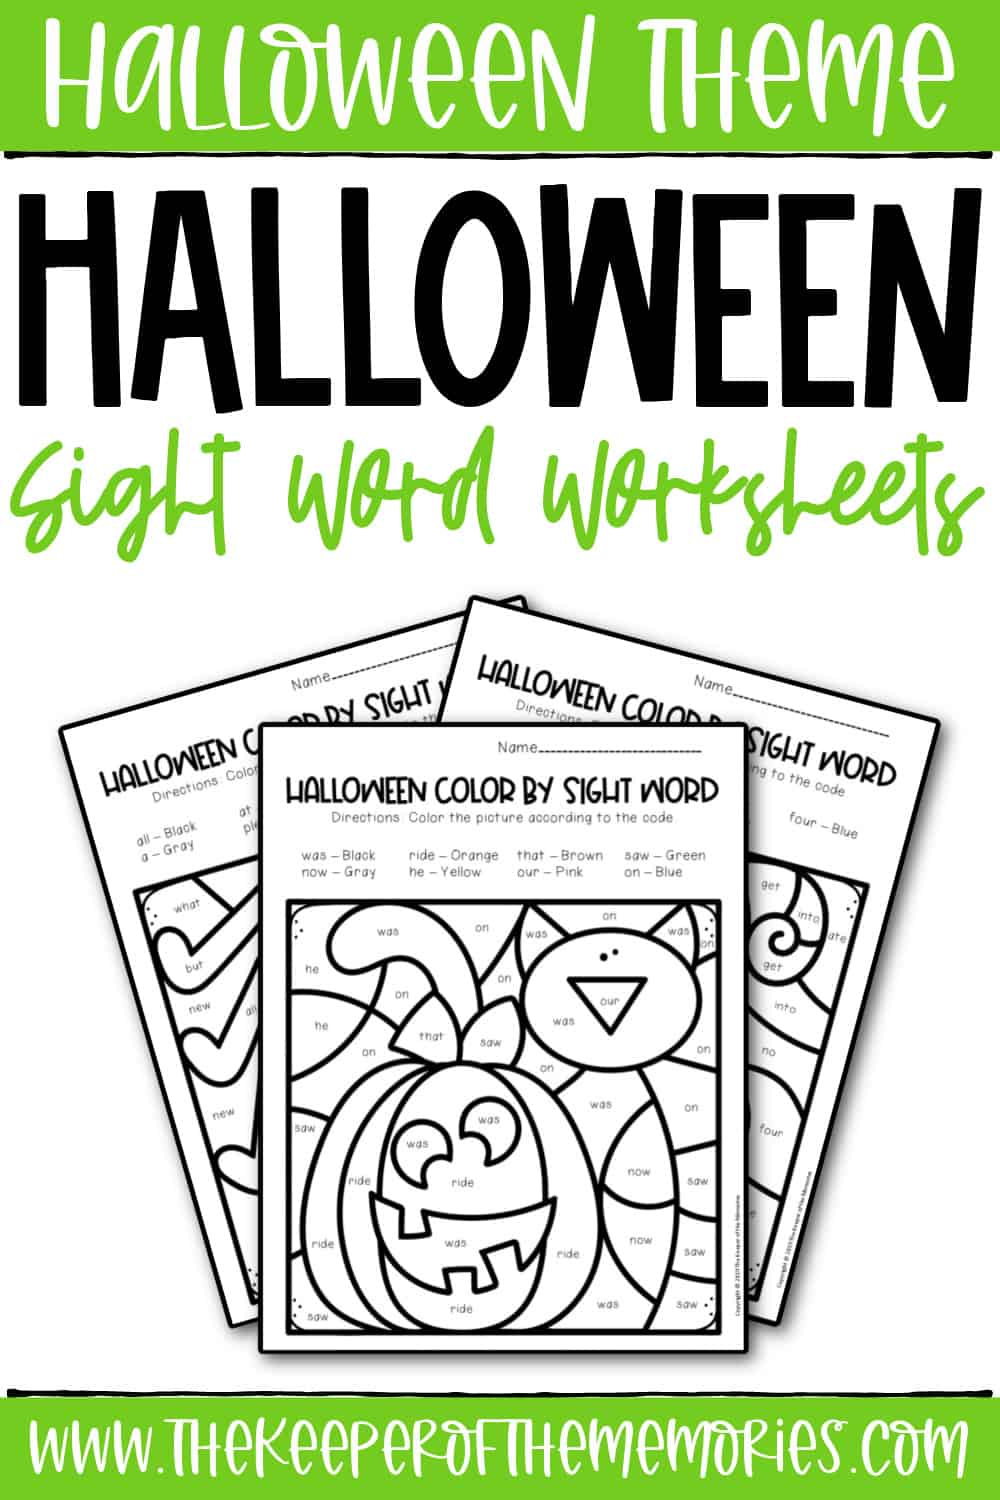 Color by Sight Word Halloween Worksheets for Kindergartners